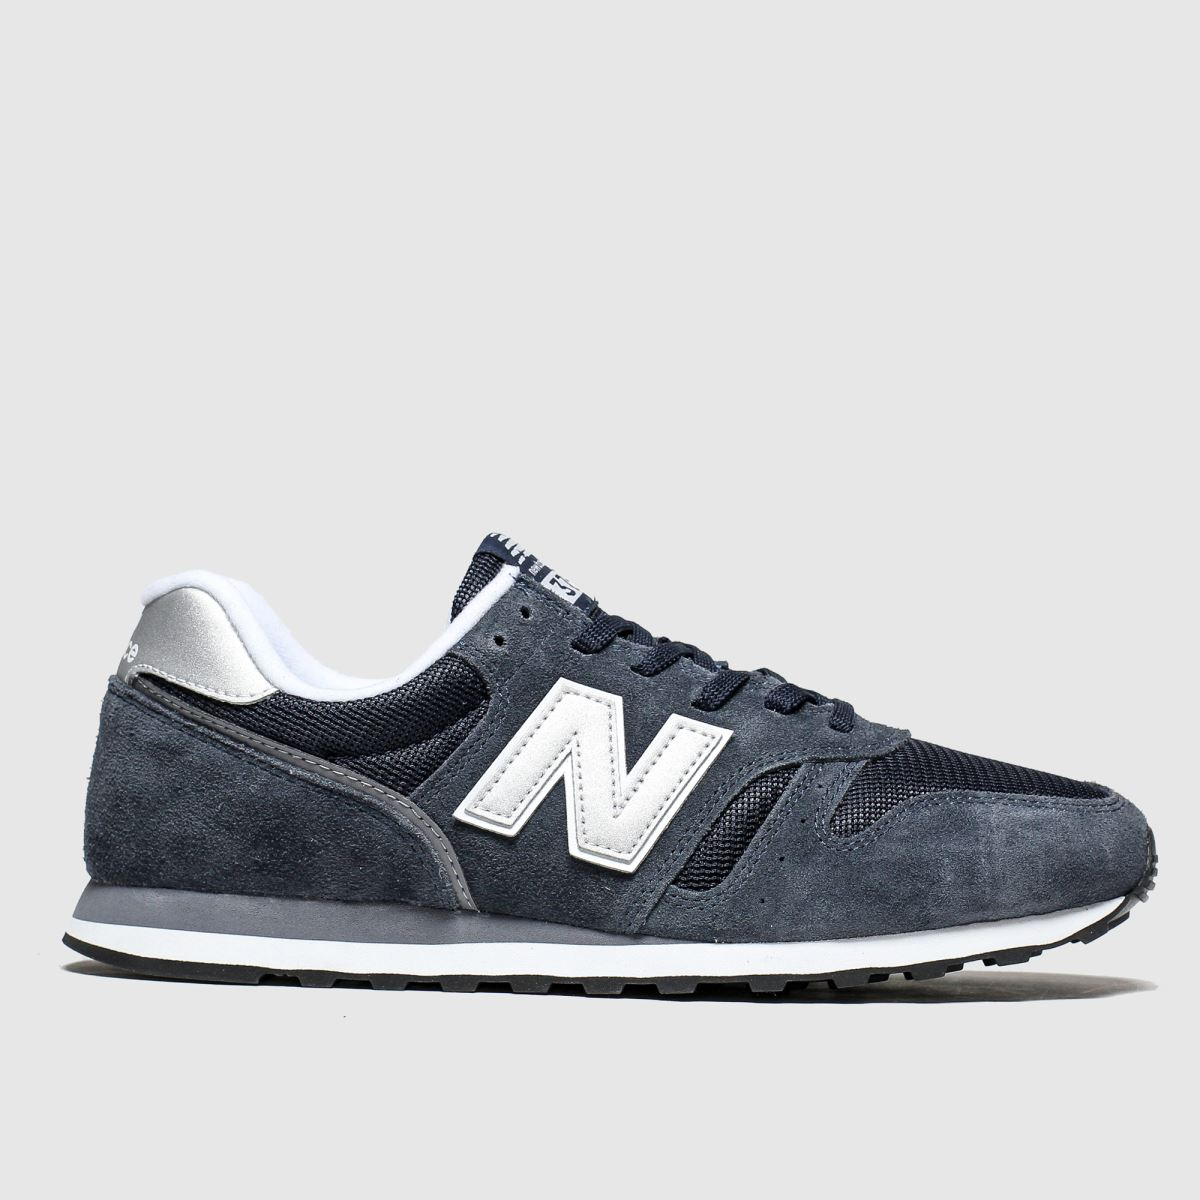 New balance navy & silver 373 v2 trainers